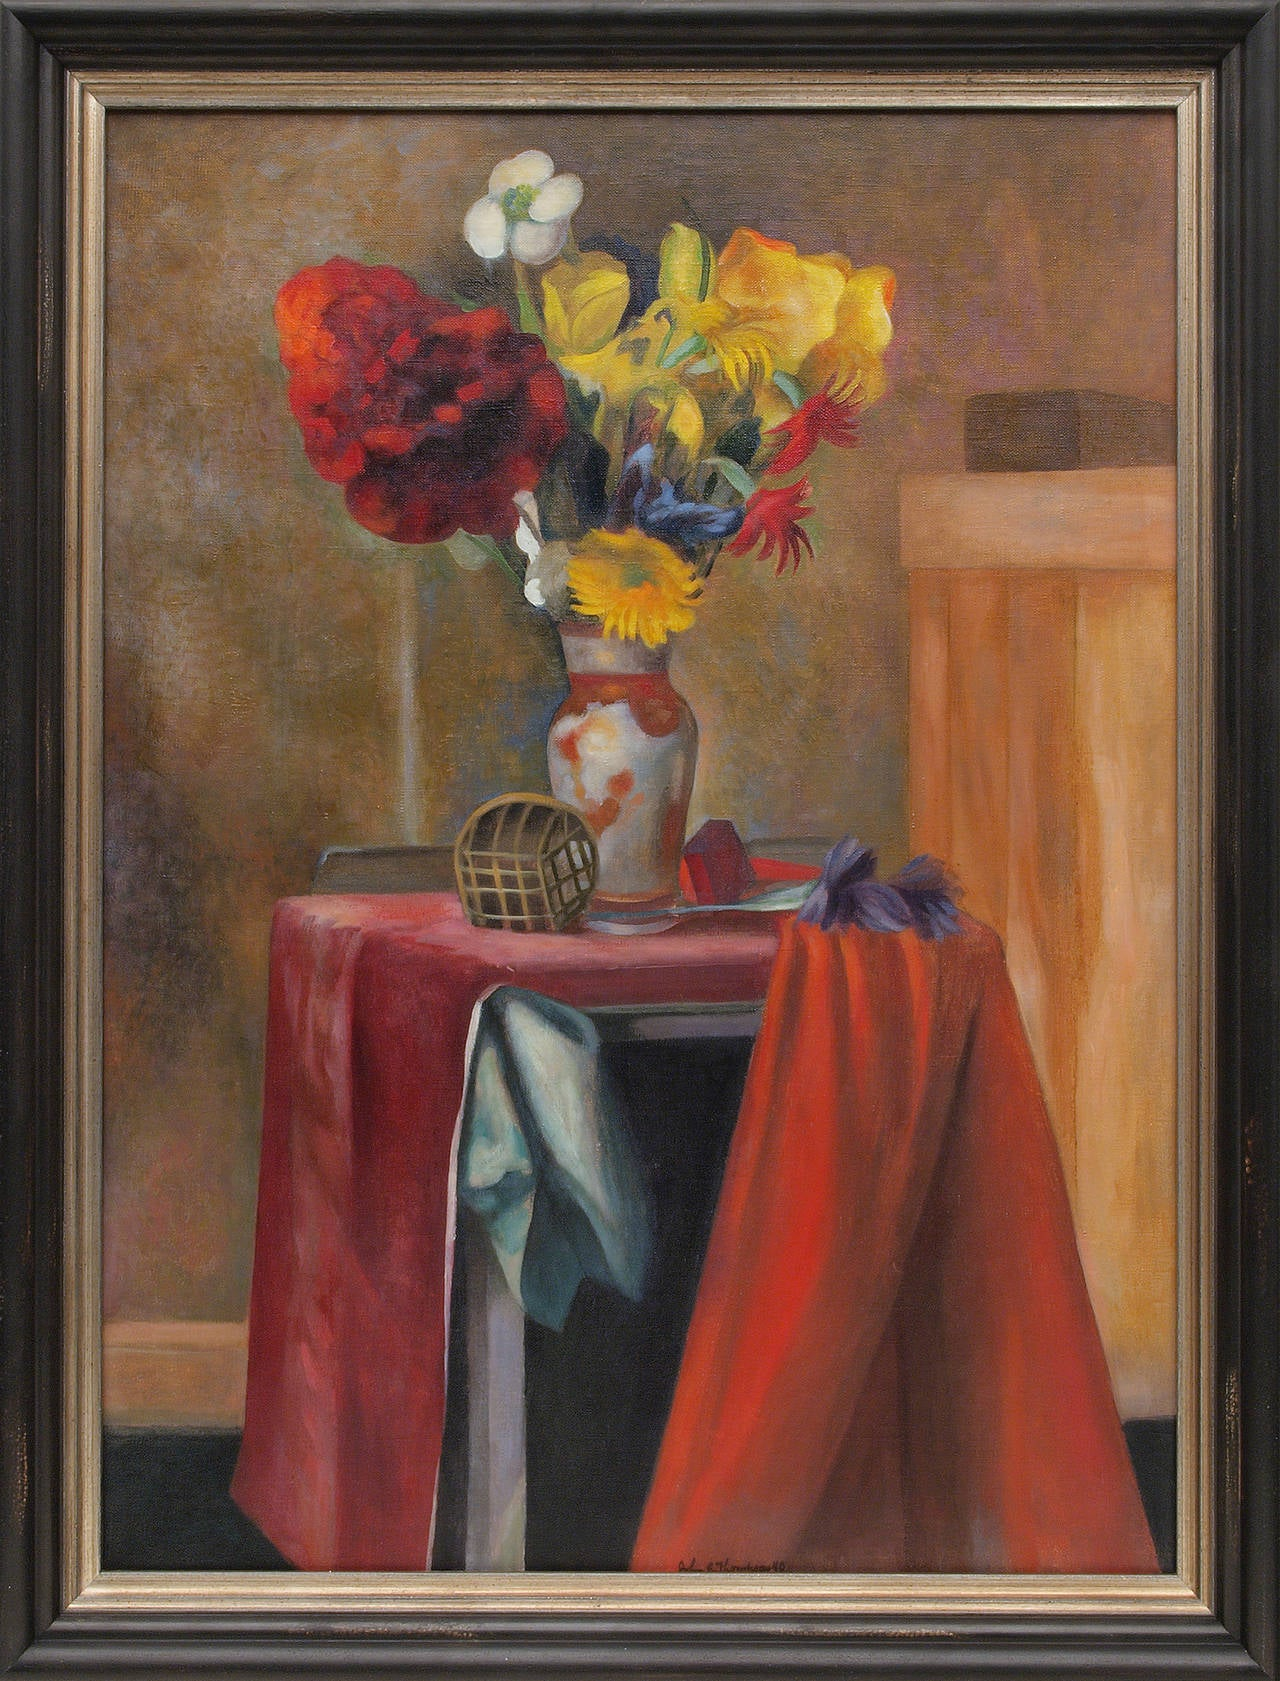 Untitled (Still Life with Flowers)